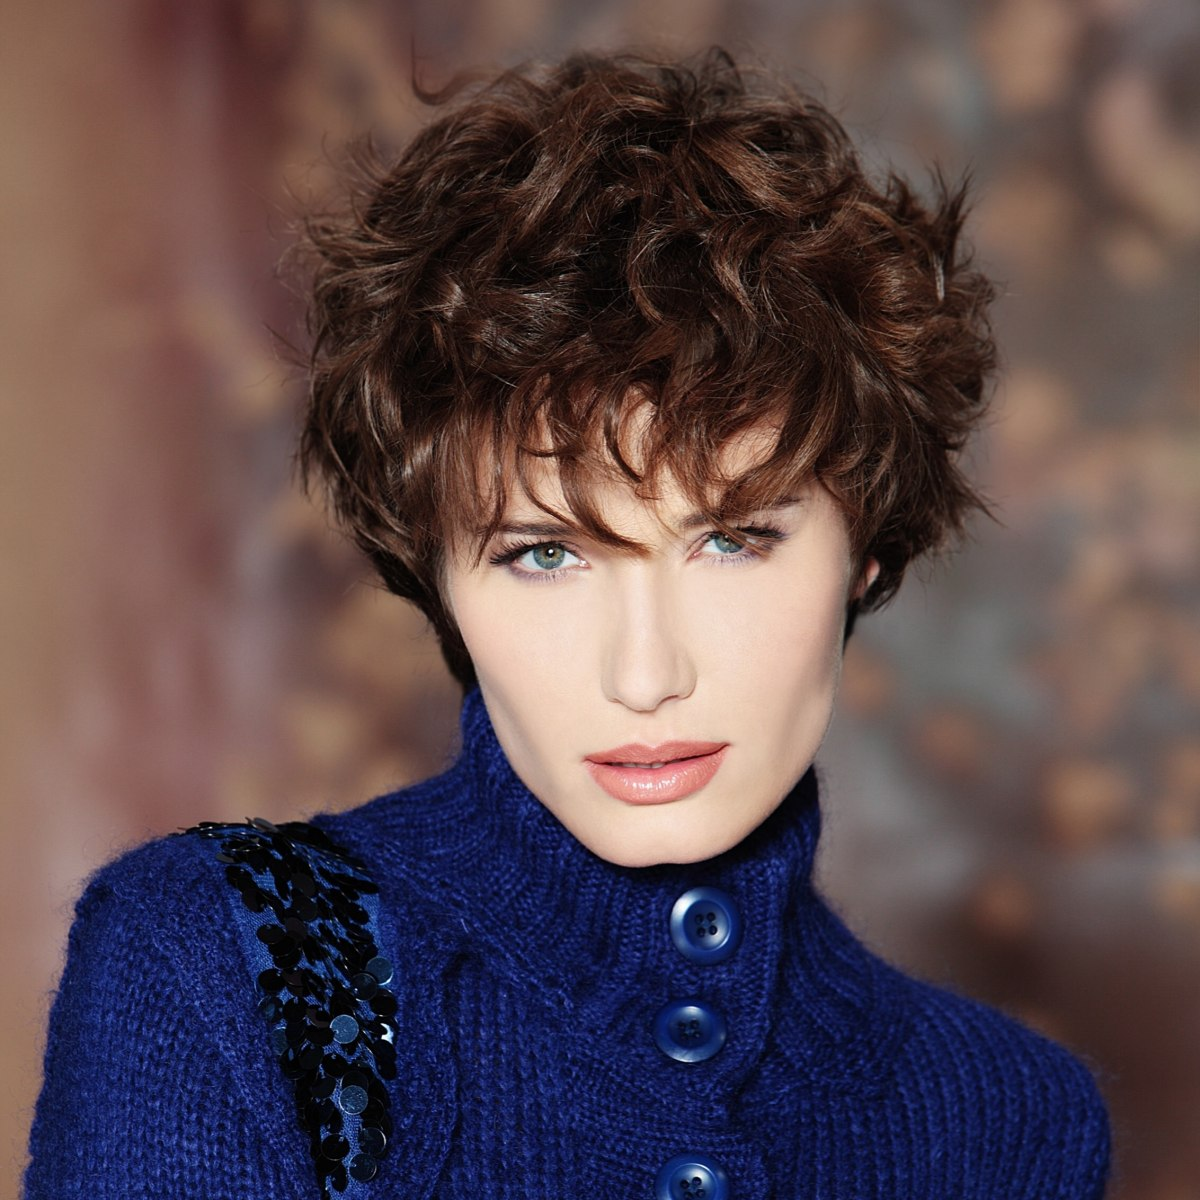 Soft Short Hairstyle With Curls And The Ears Just Covered